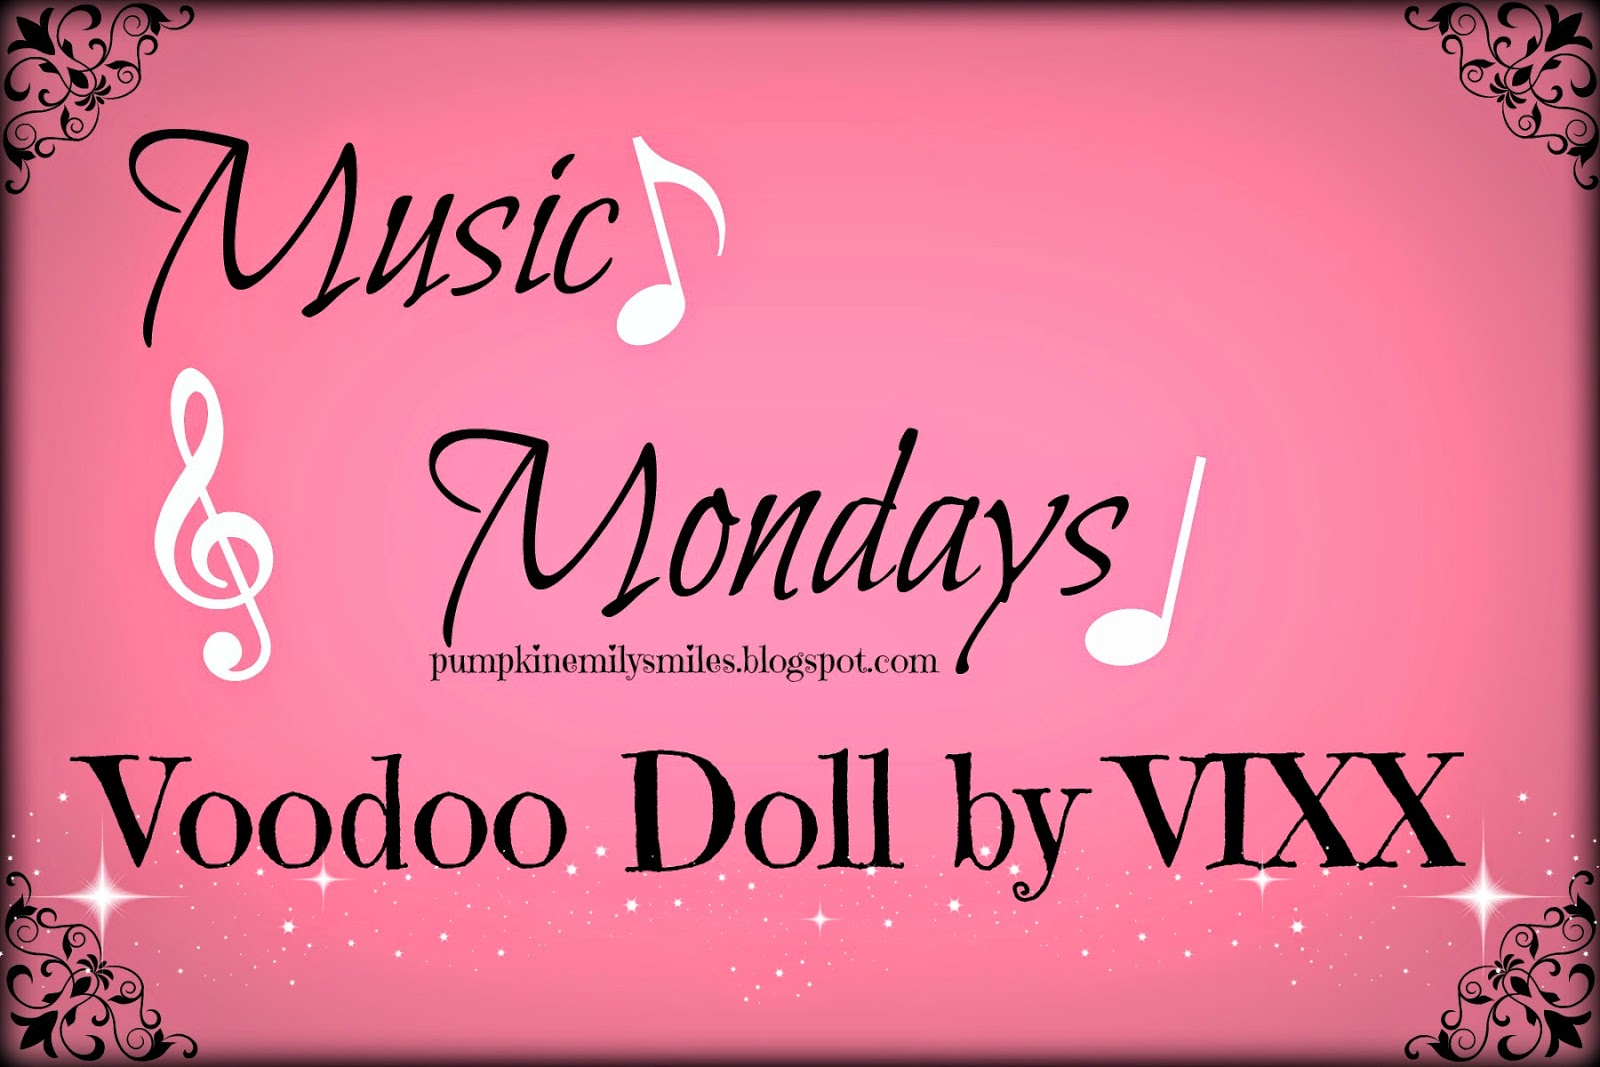 Image says: Music Mondays Voodoo Doll by VIXX